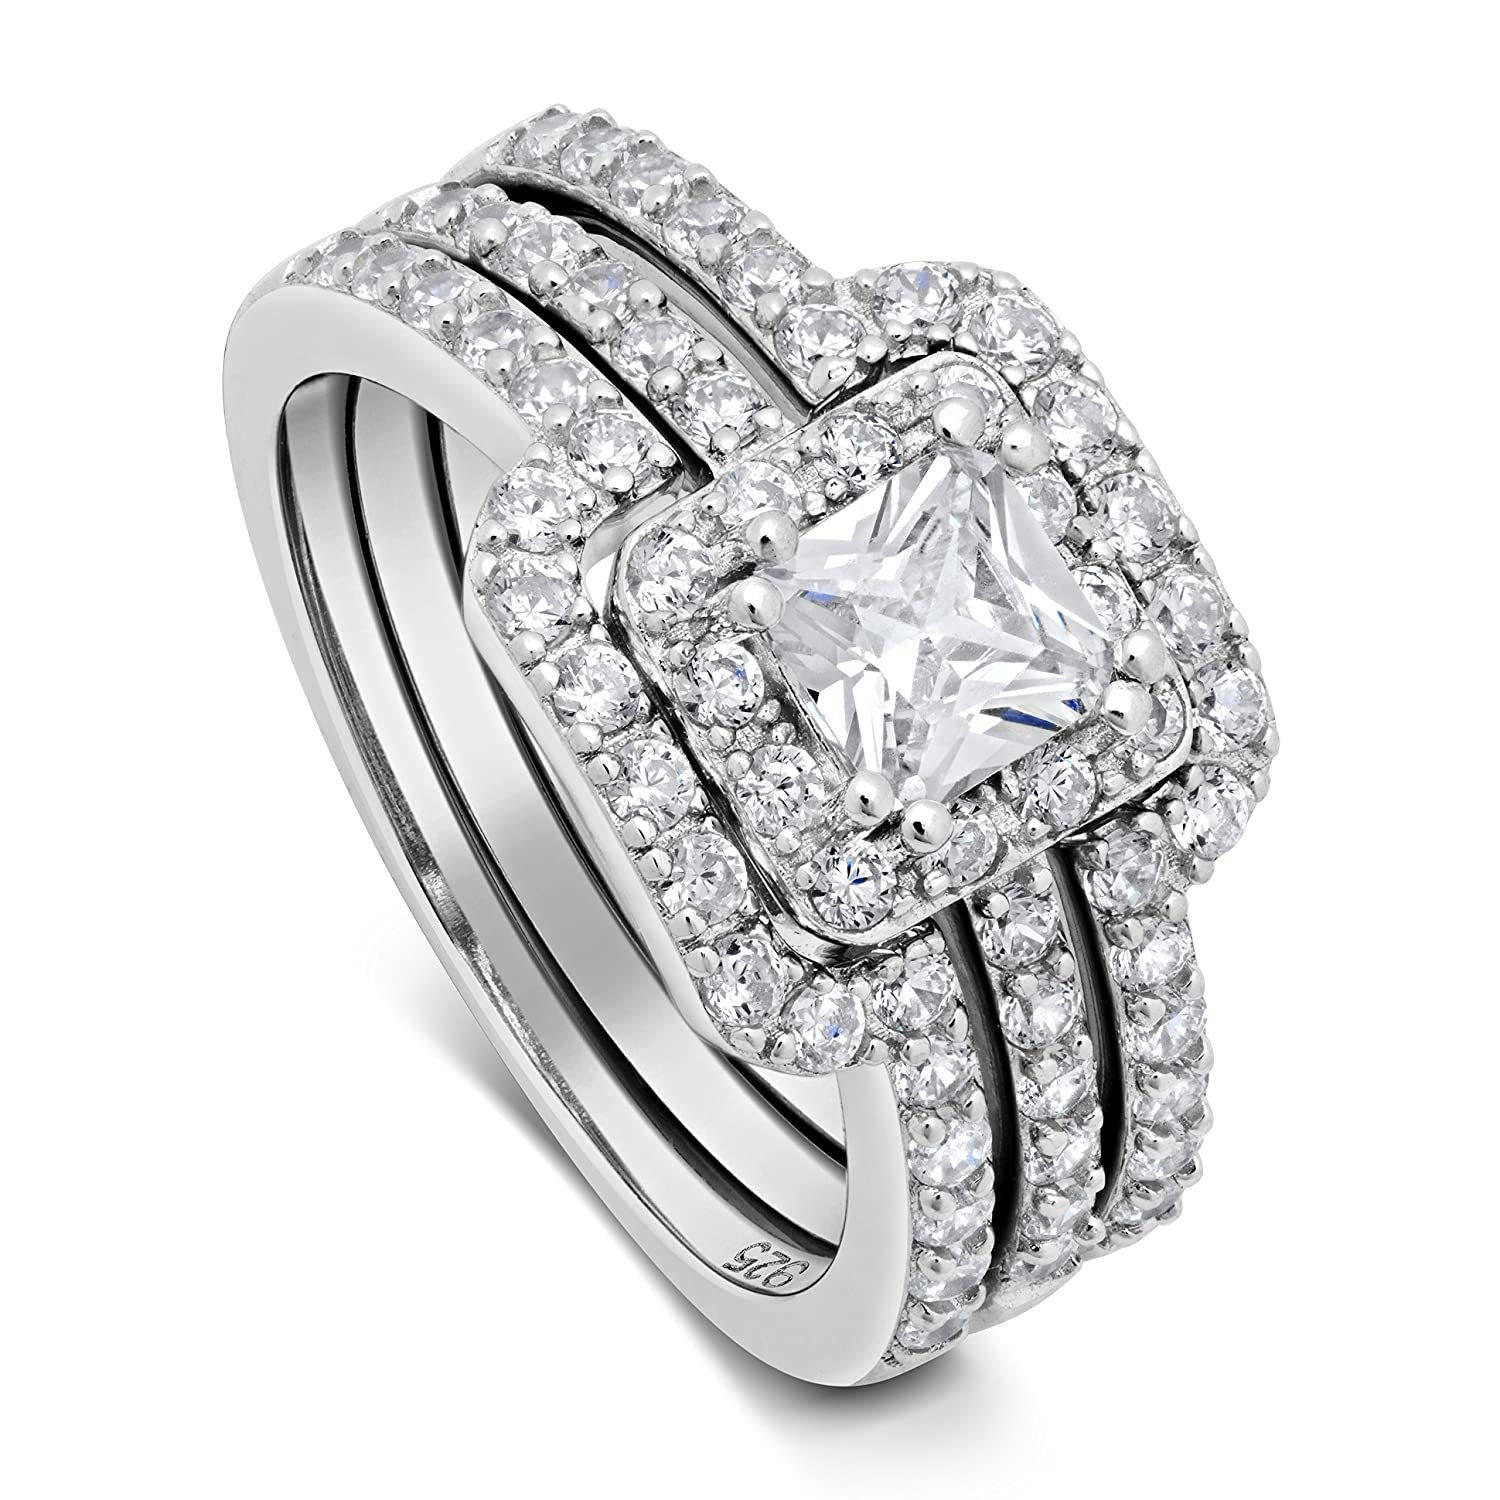 tw wedding in stone gold engagement diamond square black bezel white three label forevermark ring rings